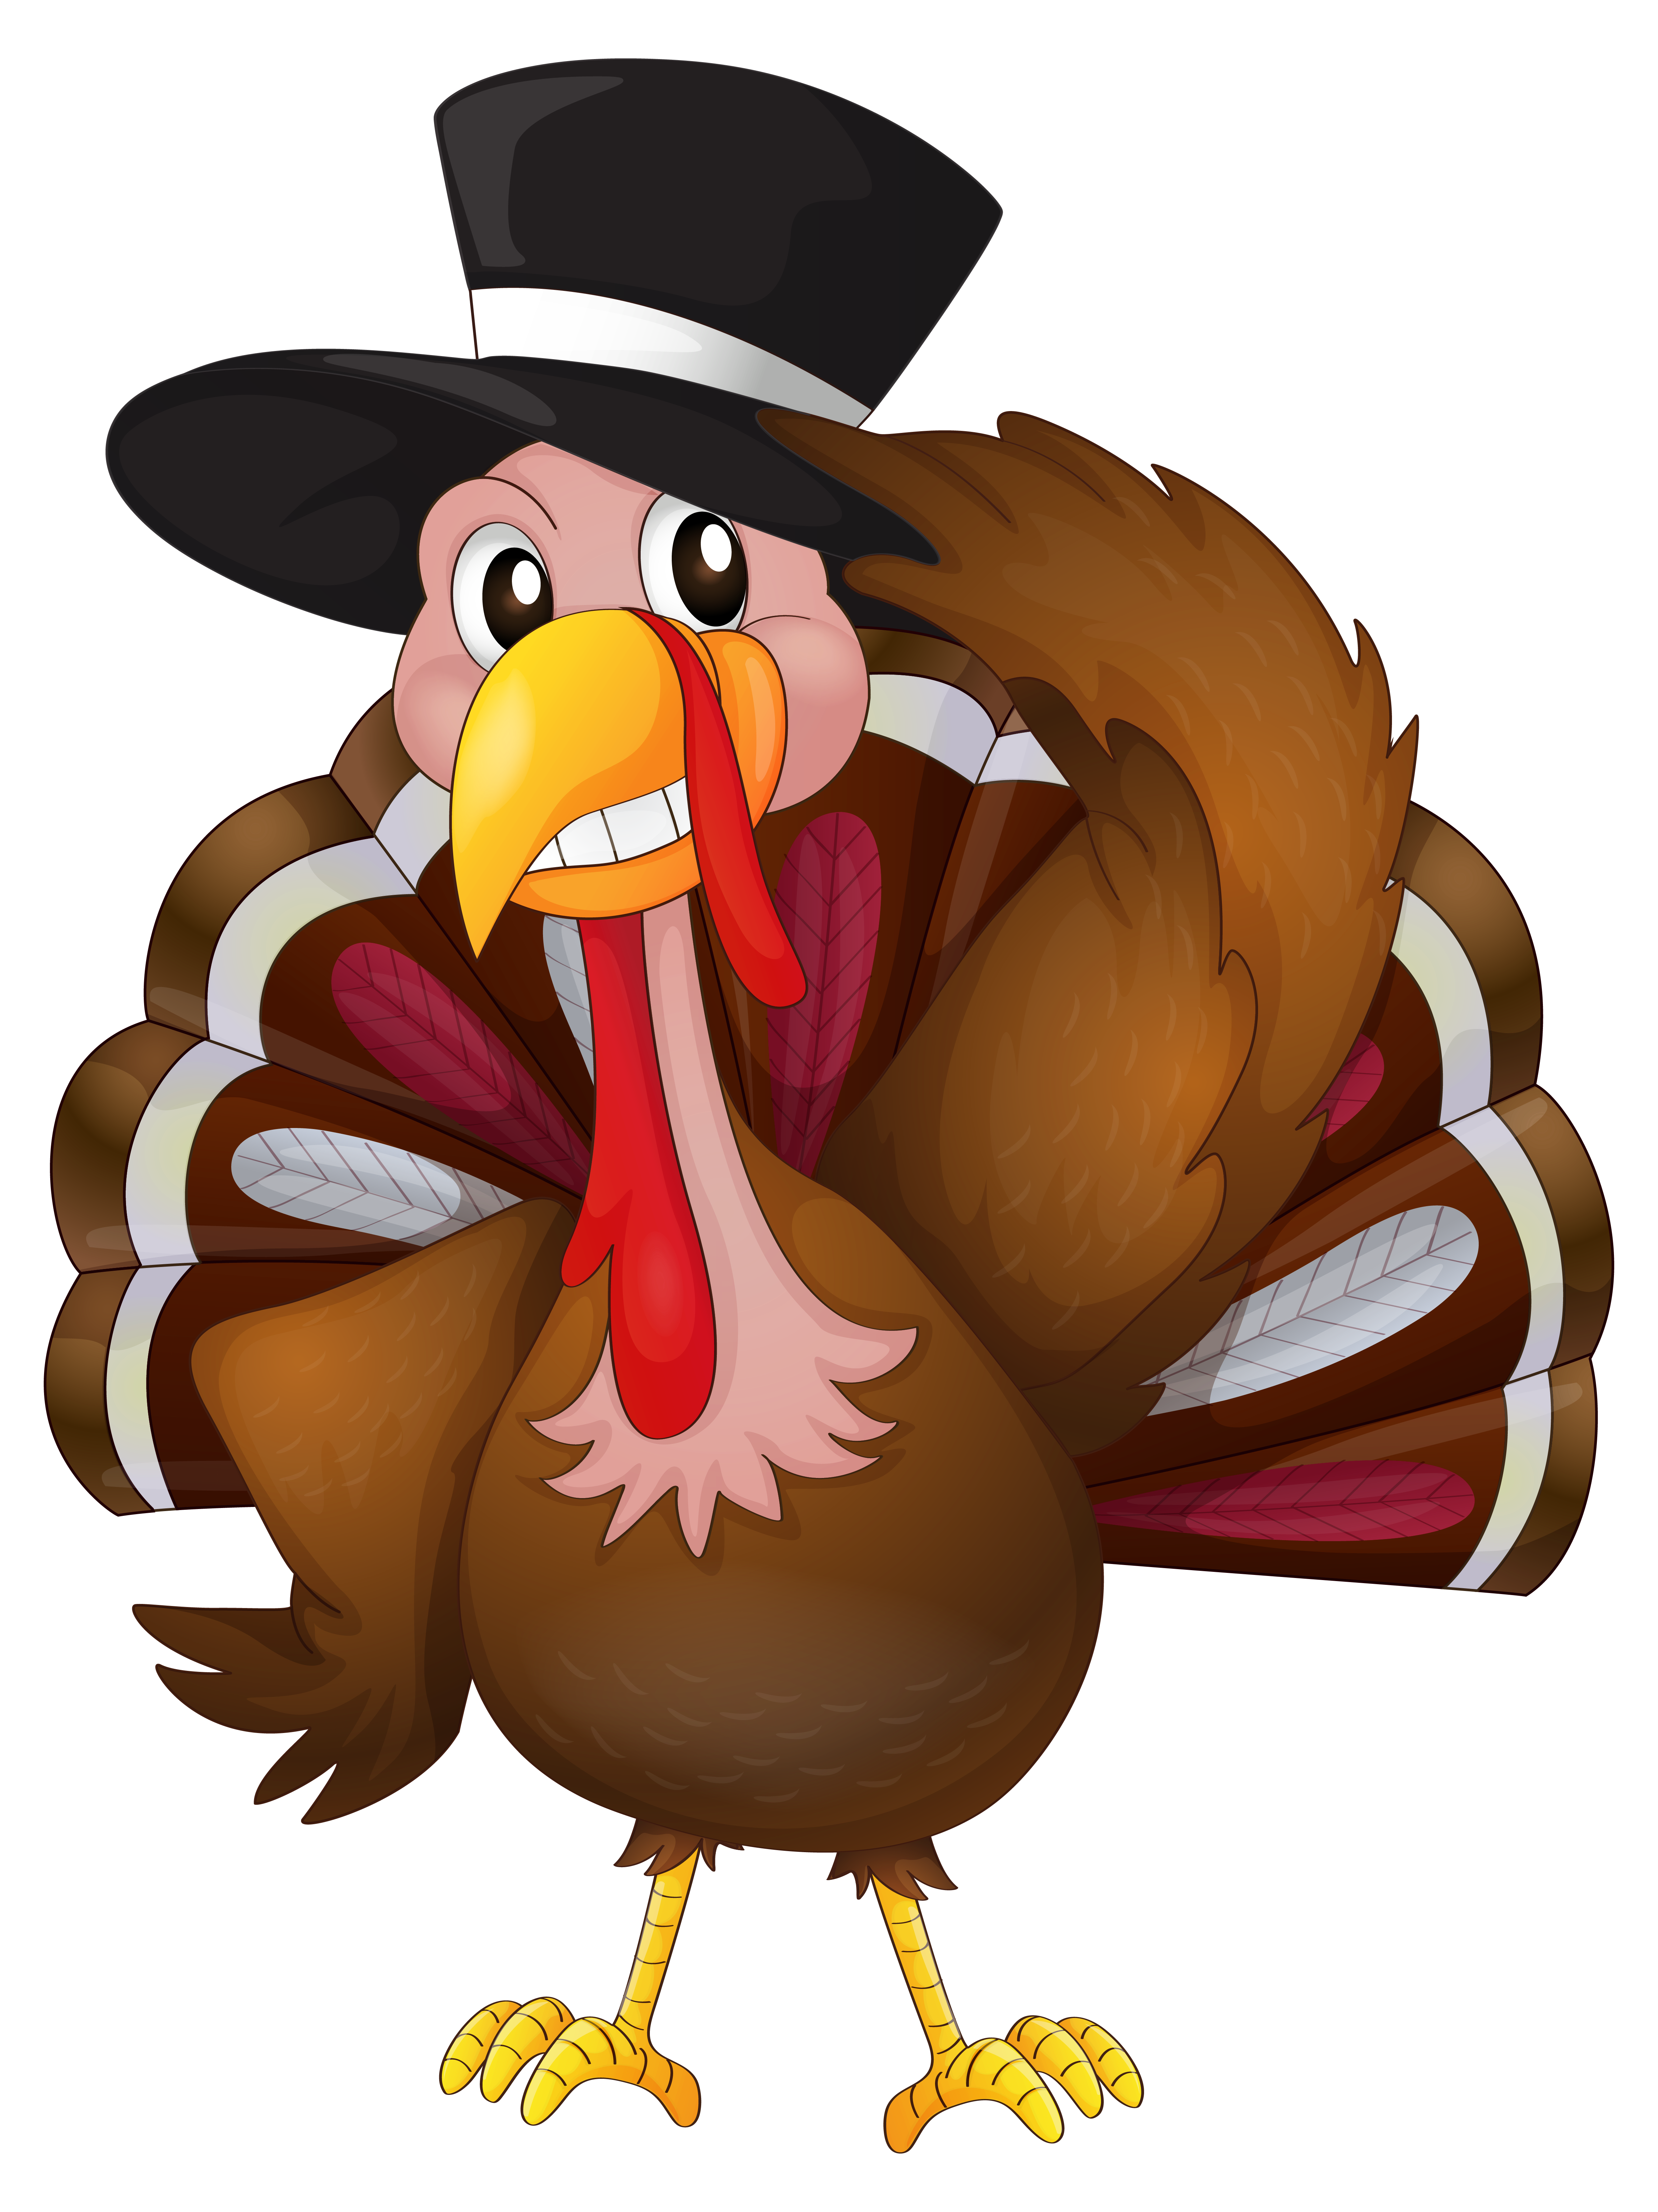 Pilgrims clipart ambassador. Thanksgiving turkey at getdrawings